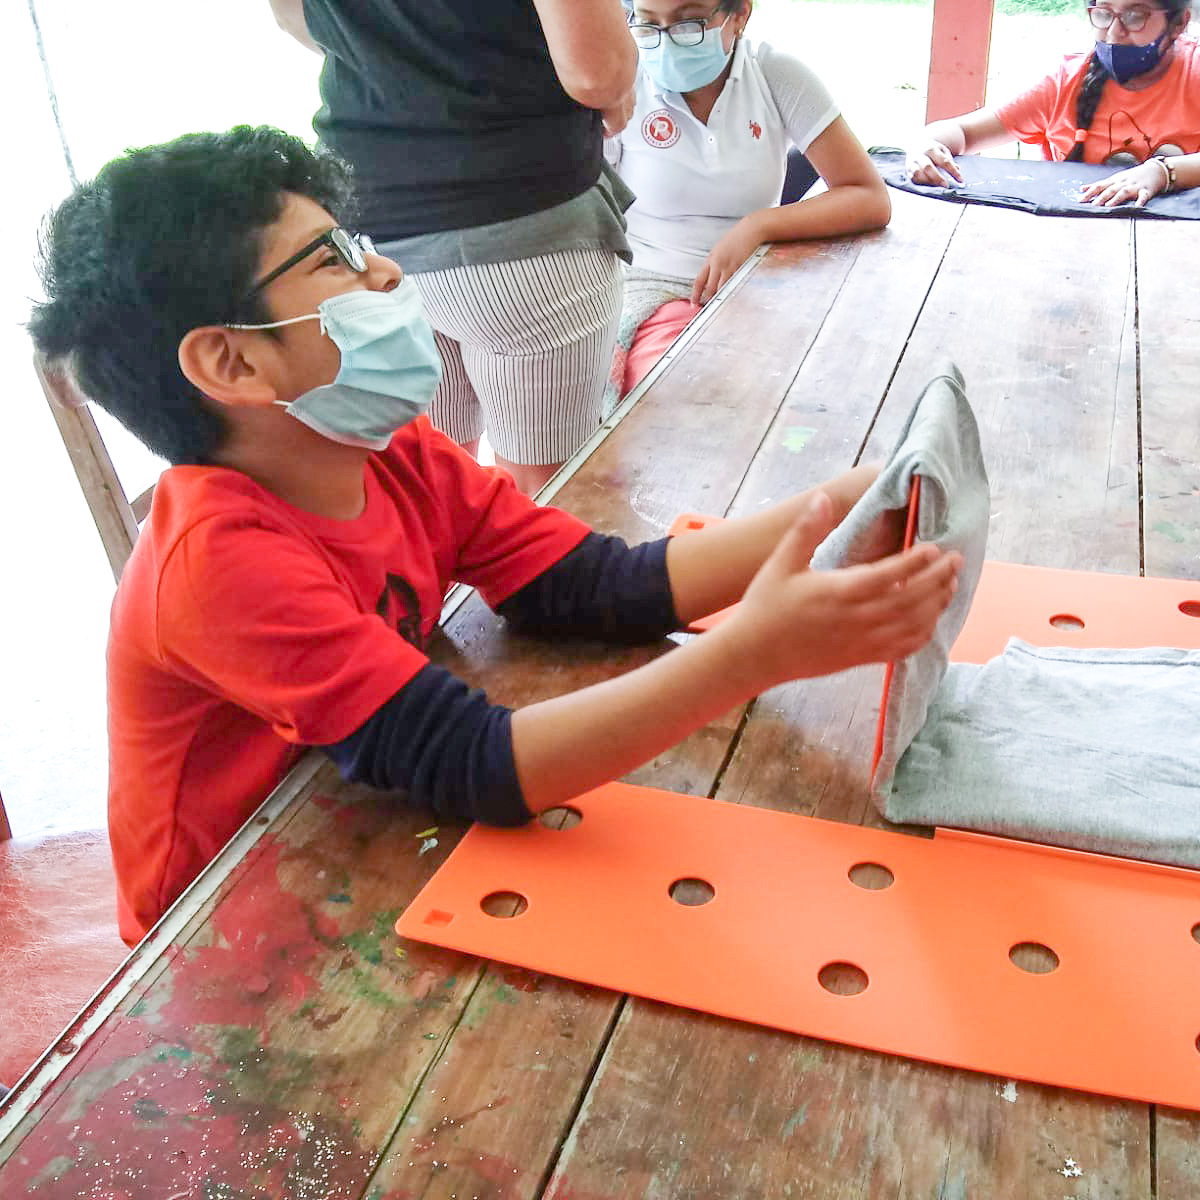 A young boy wearing a mask sits at a table and uses a shirt folding board to fold a gray t-shirt.